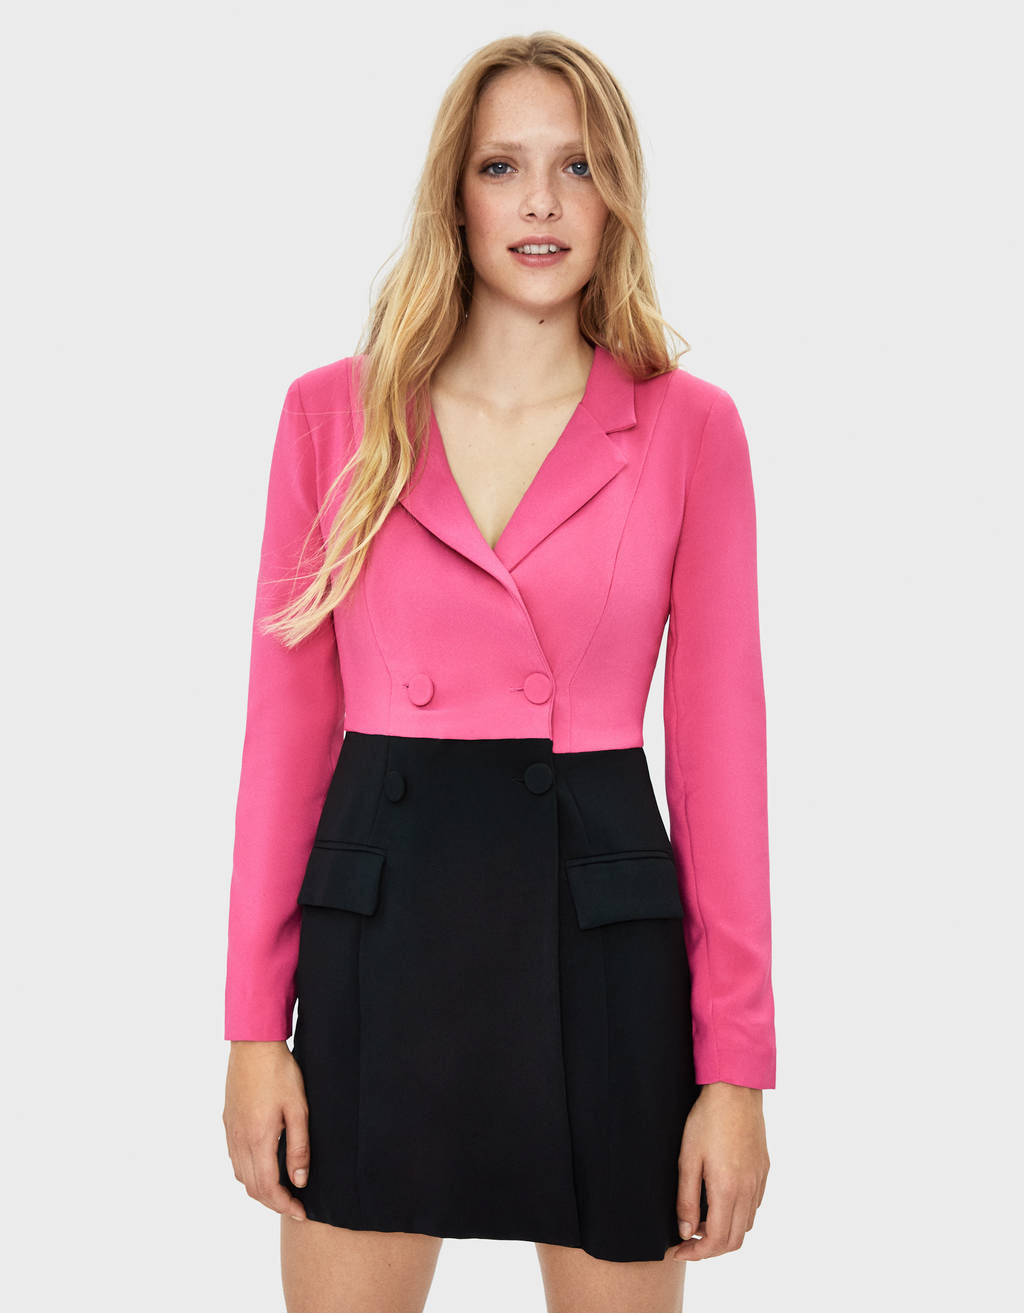 Two colour blazer-style dress